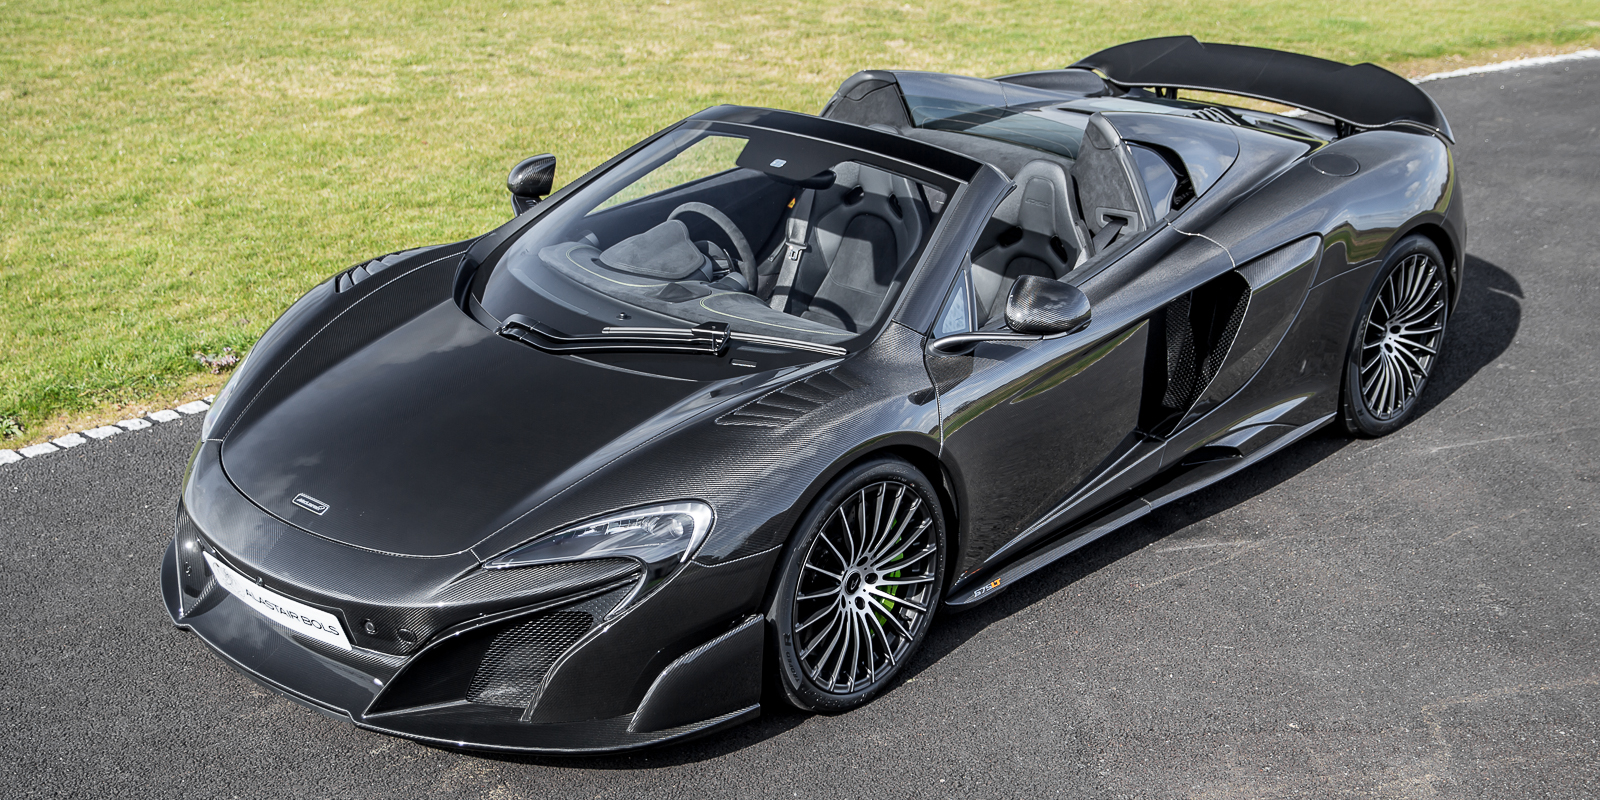 McLaren 675LT Spider Carbon Series by MSO